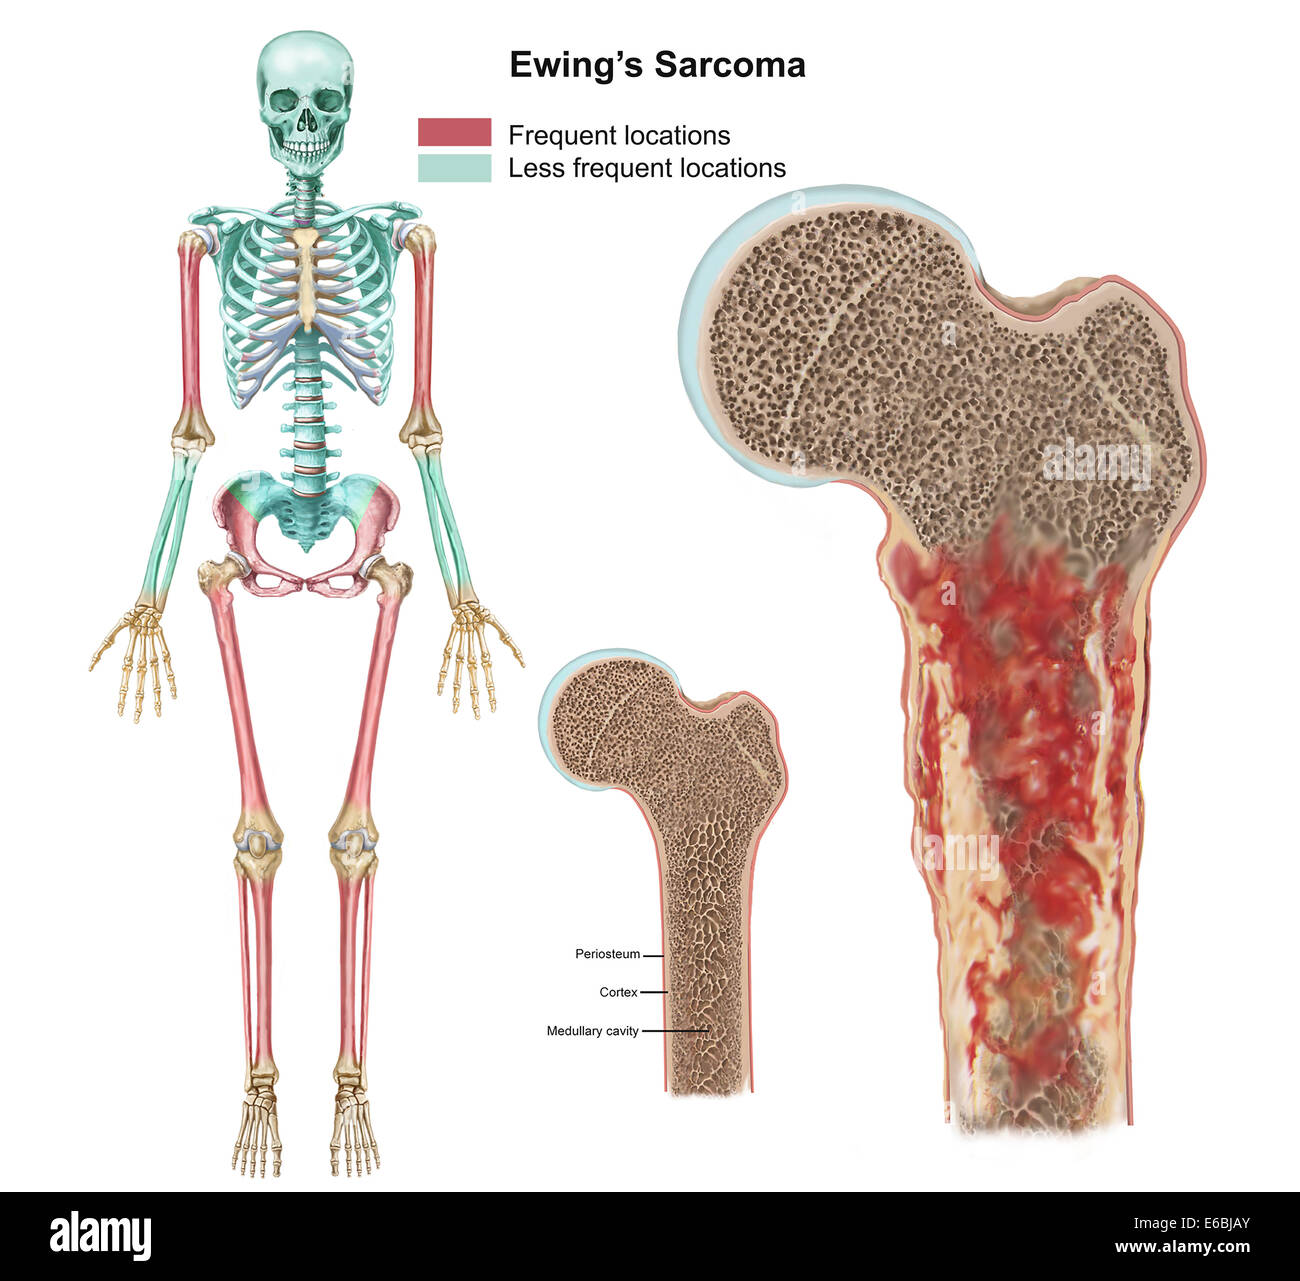 hight resolution of ewings sarcoma locations on the skeleton and detail of tumor on head of femur